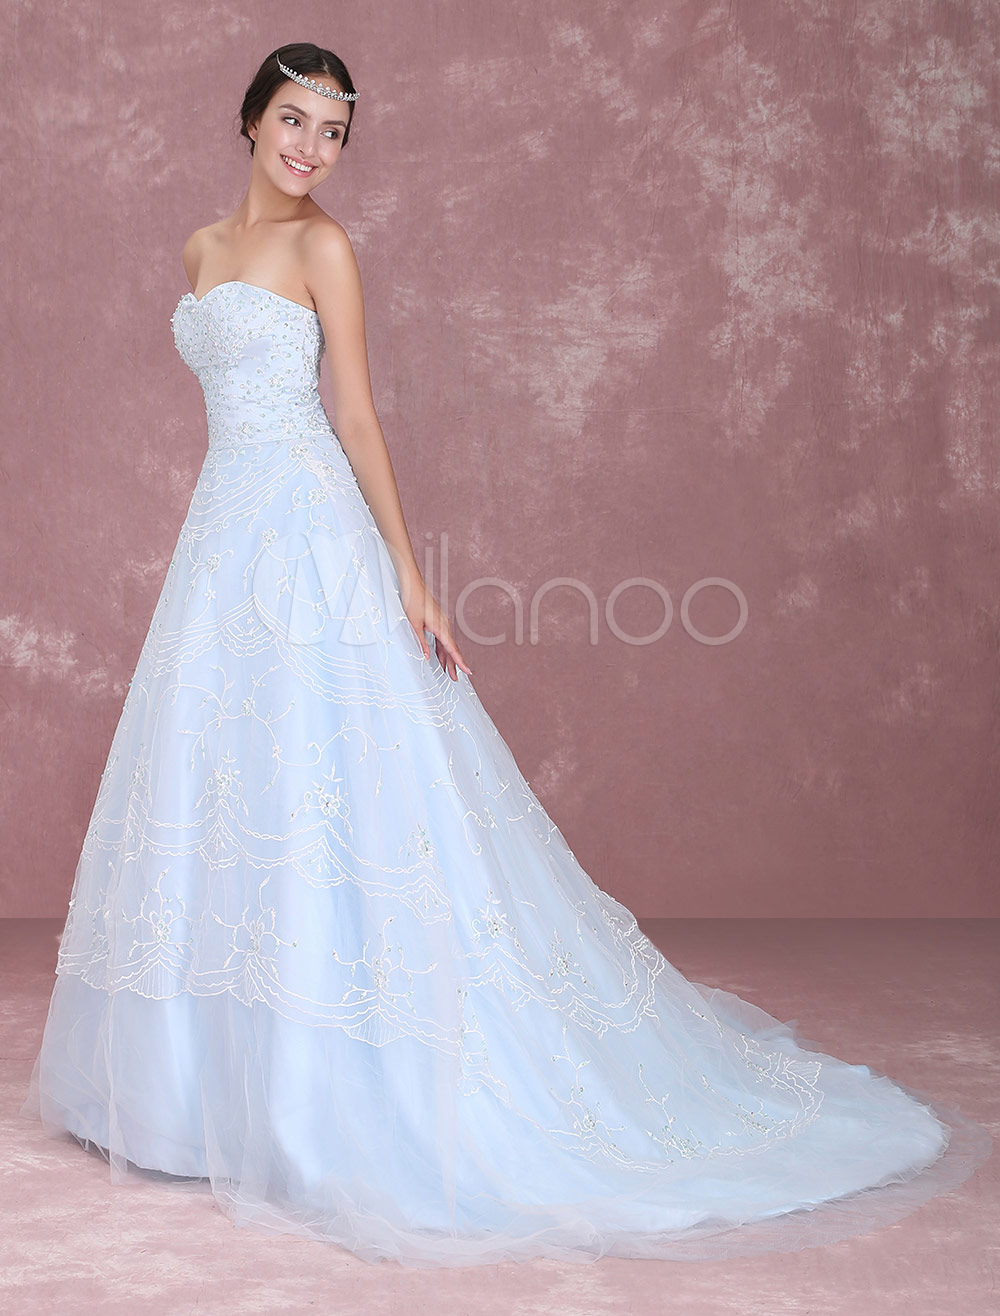 Blue Wedding Dress Lace Sweetheart Strapless Beading Court Train A-Line Bridal Gown Milanoo photo